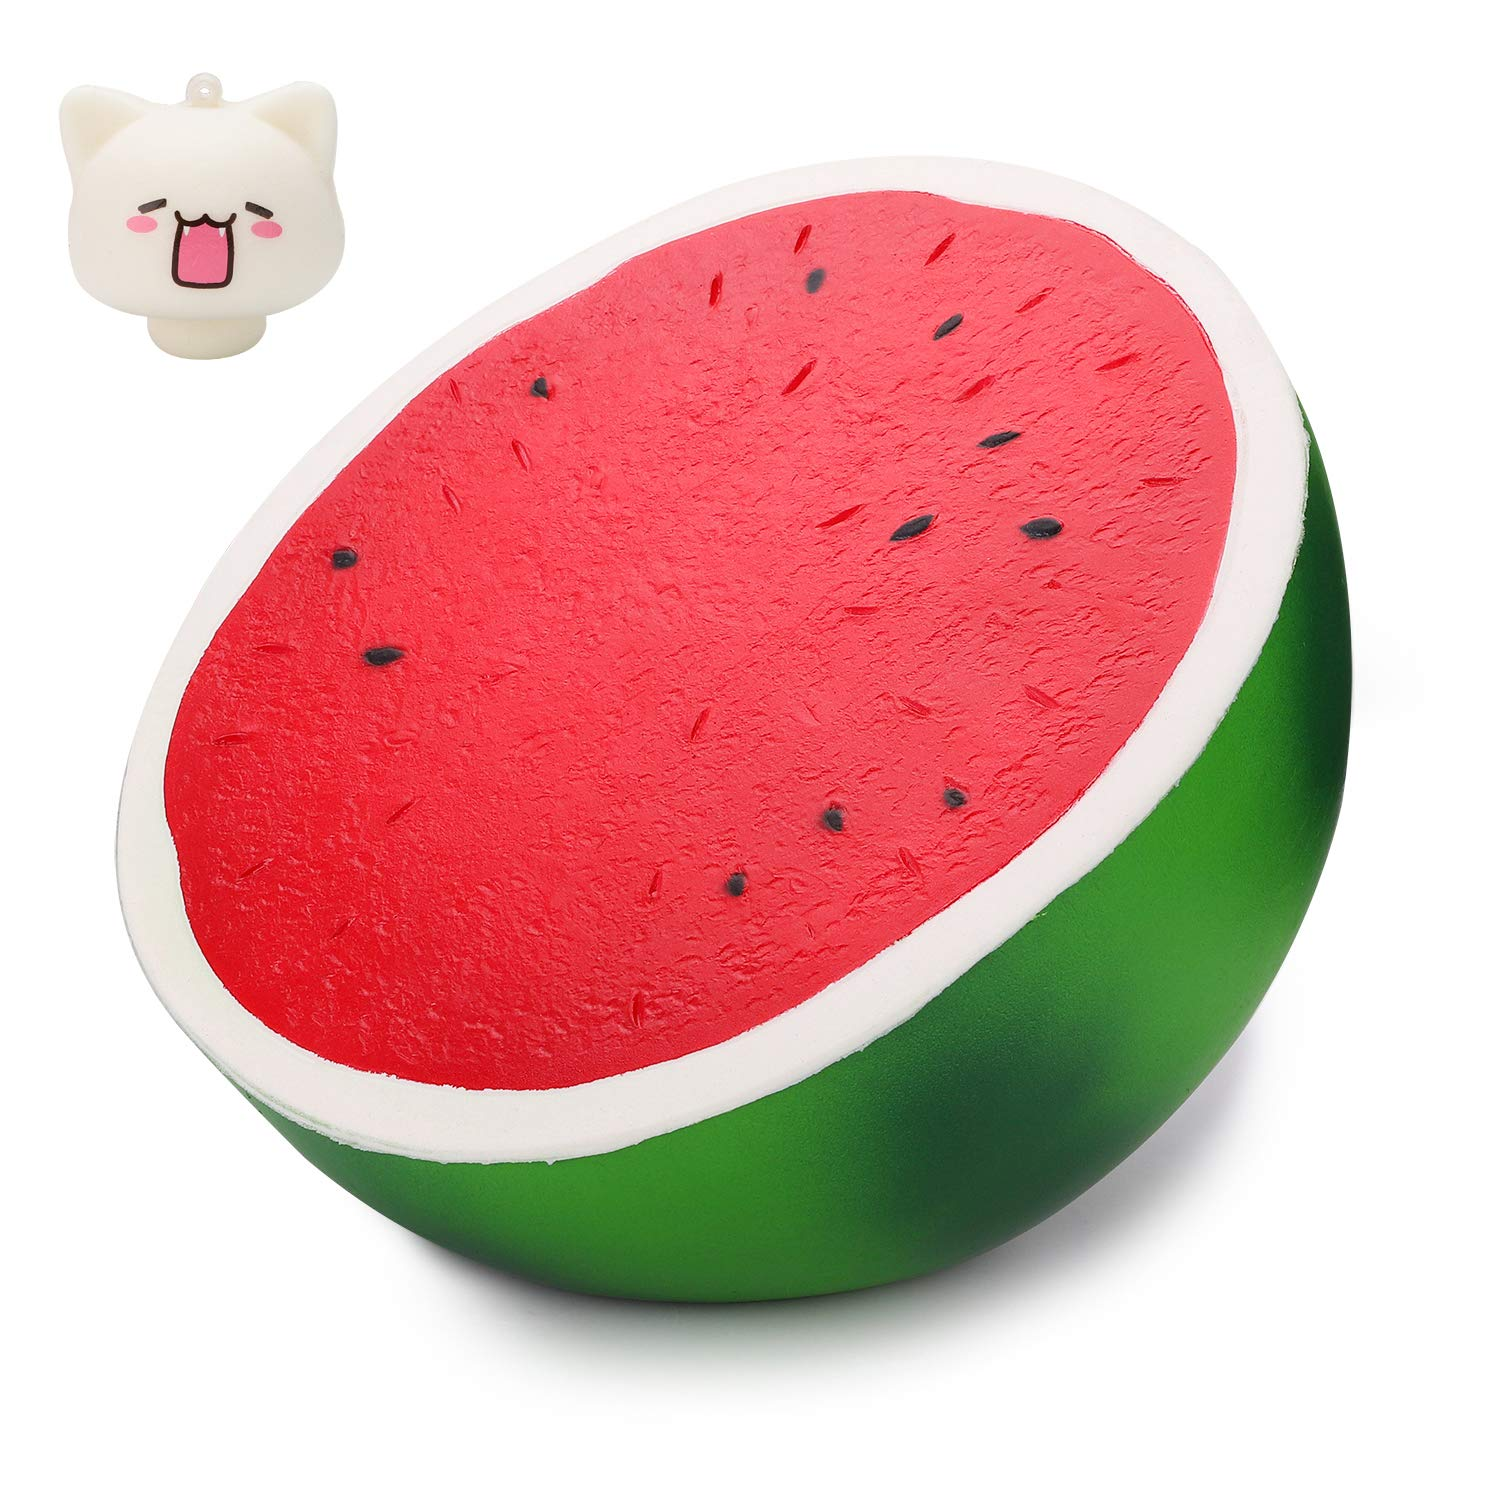 Lovely Toy,Stress Relief Toy,Decorations Toy Gift Large Watermelon WATINC 1pcs 10inch Jumbo Watermelon Squishy Sweet Scented Funny Comfortable Squishy for Kid Toy